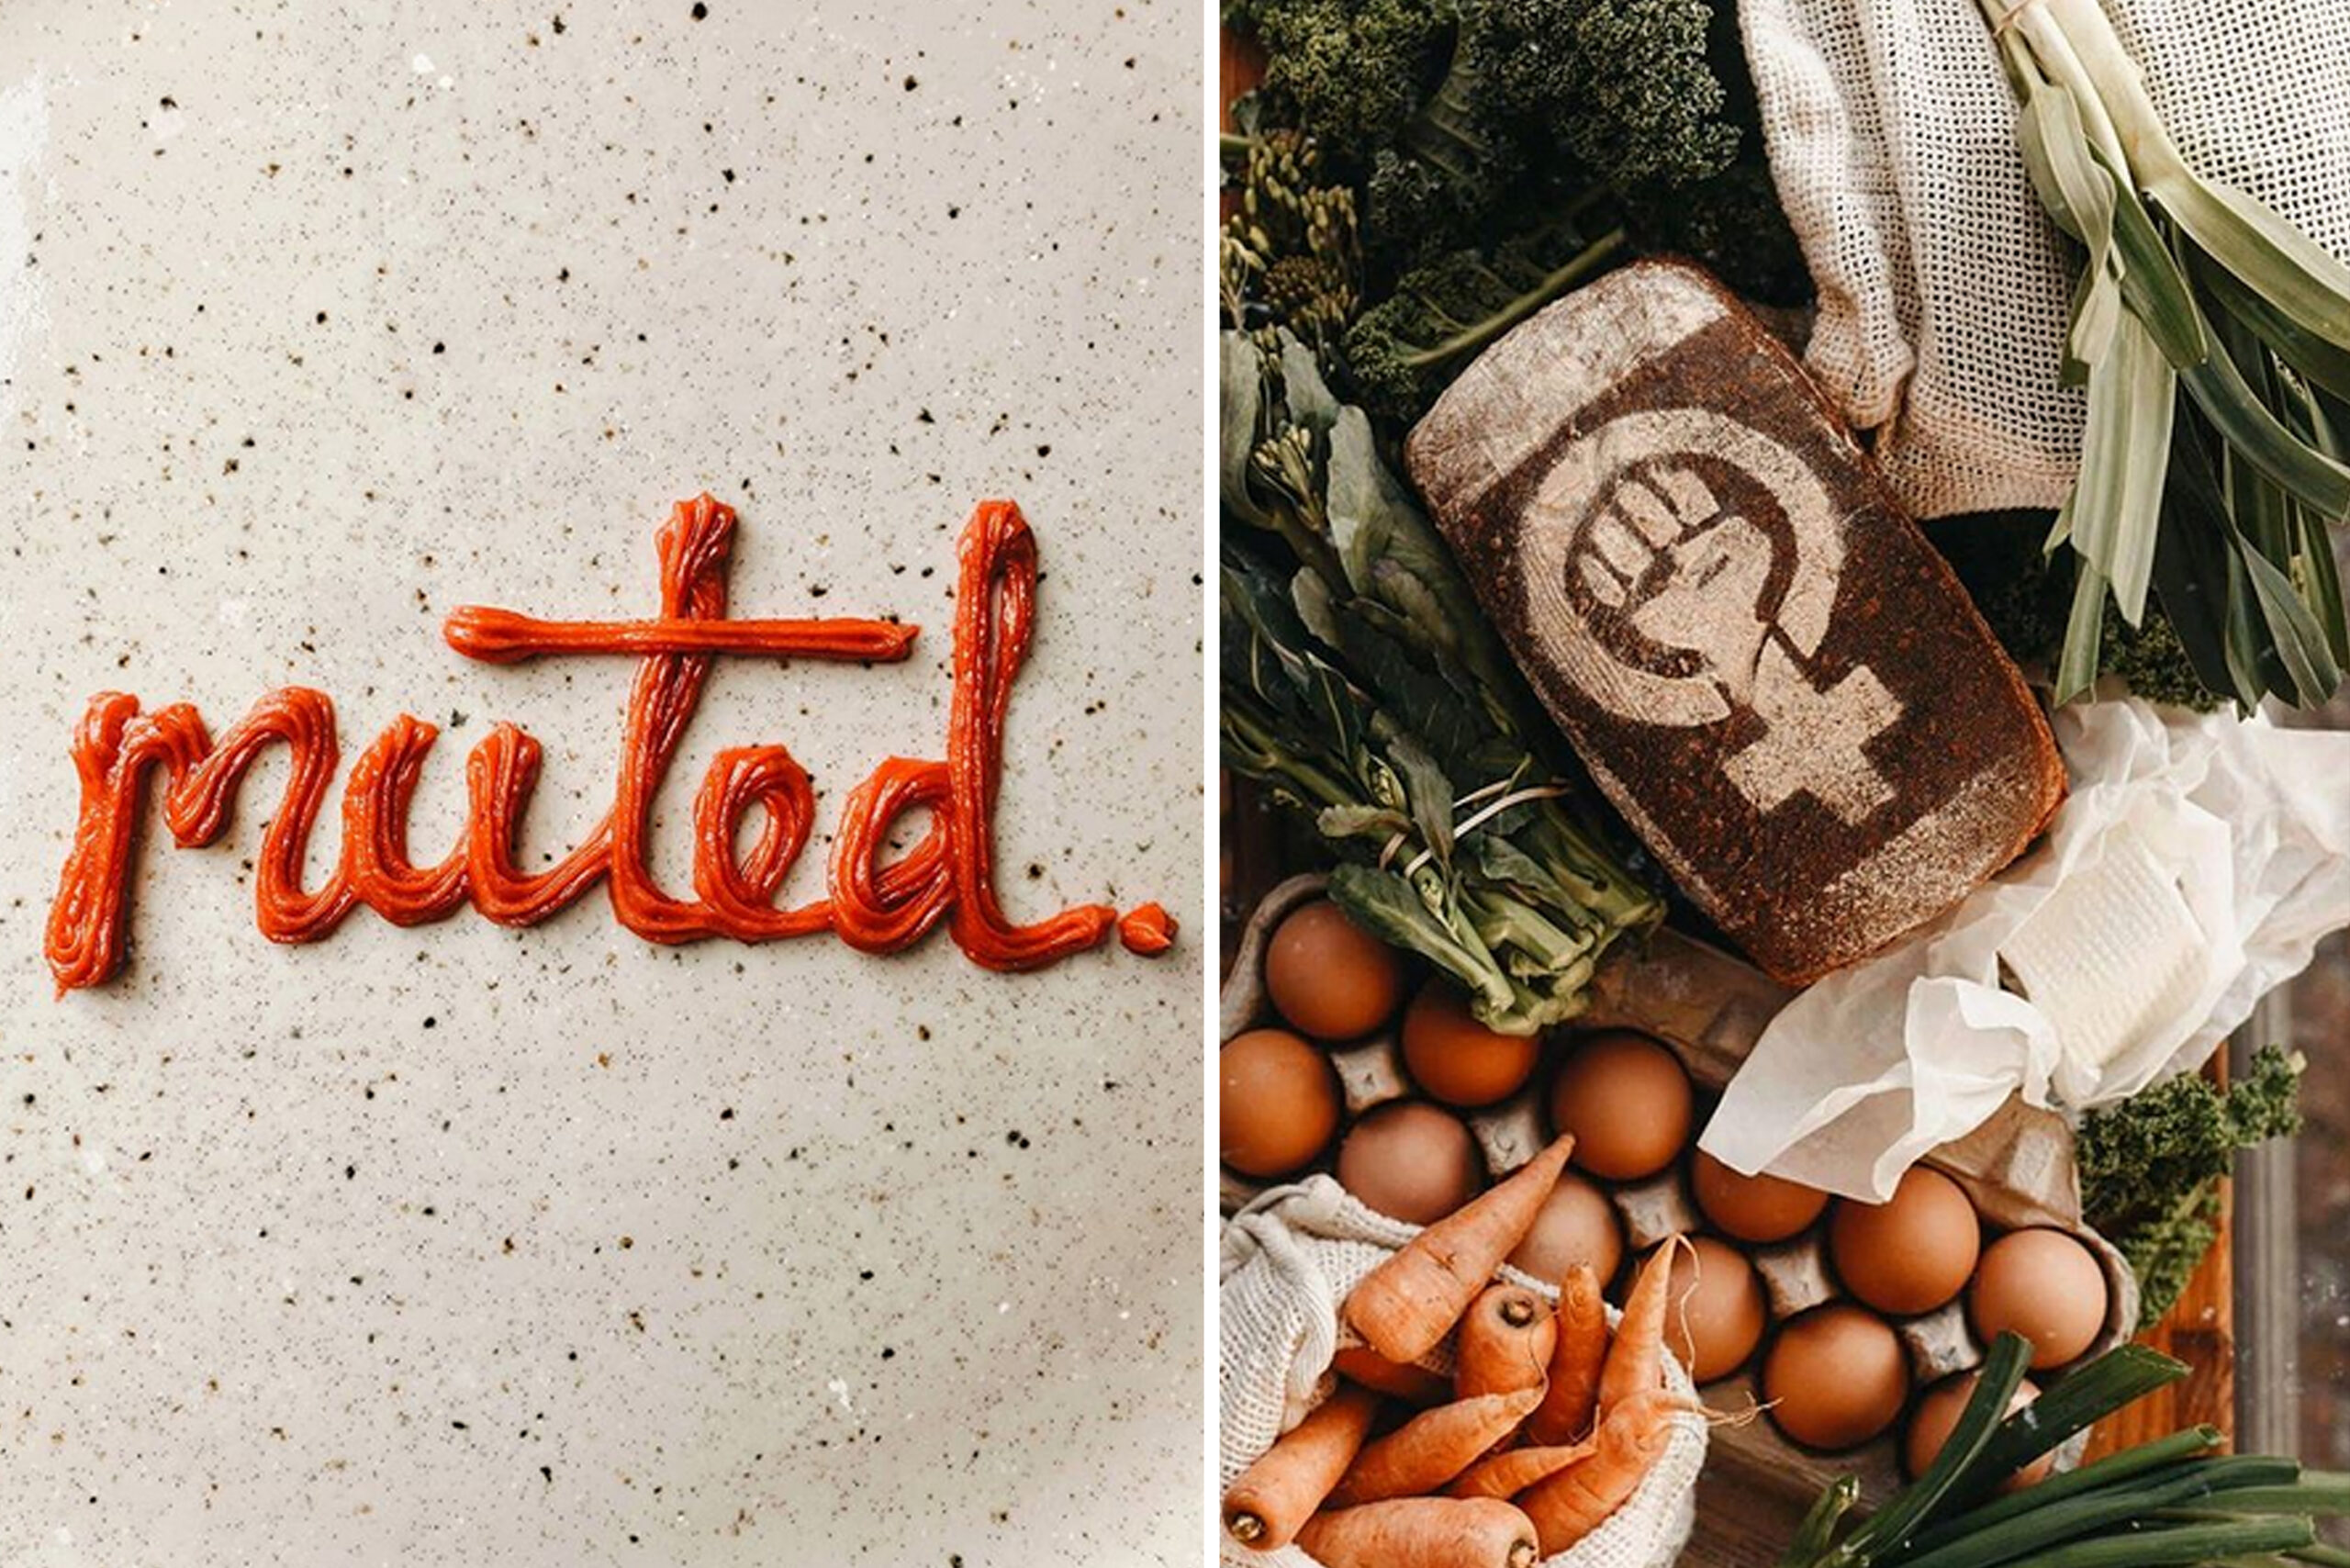 """On the left, red frosting spells out the word """"muted"""" on speckled table; on the right, a loaf of bread is dusted with flour, making a design of a raised fist inside the female symbol"""